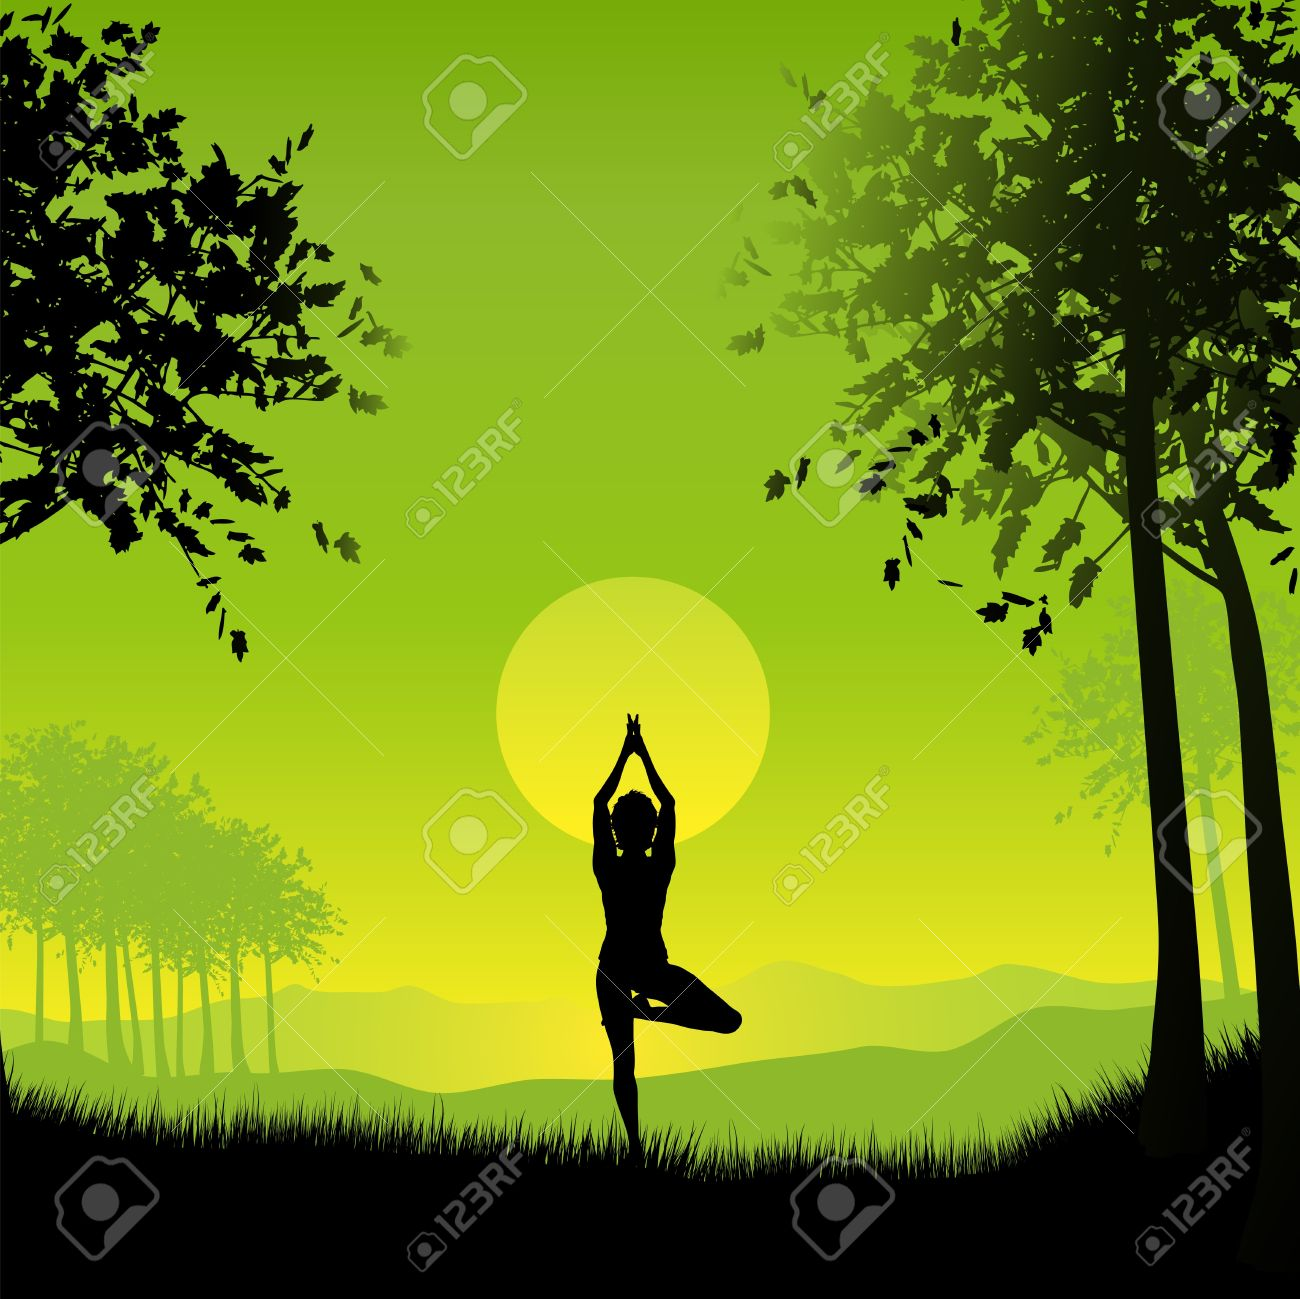 Silhouette of a female in a yoga pose under a sunset sky Stock Photo - 7287162